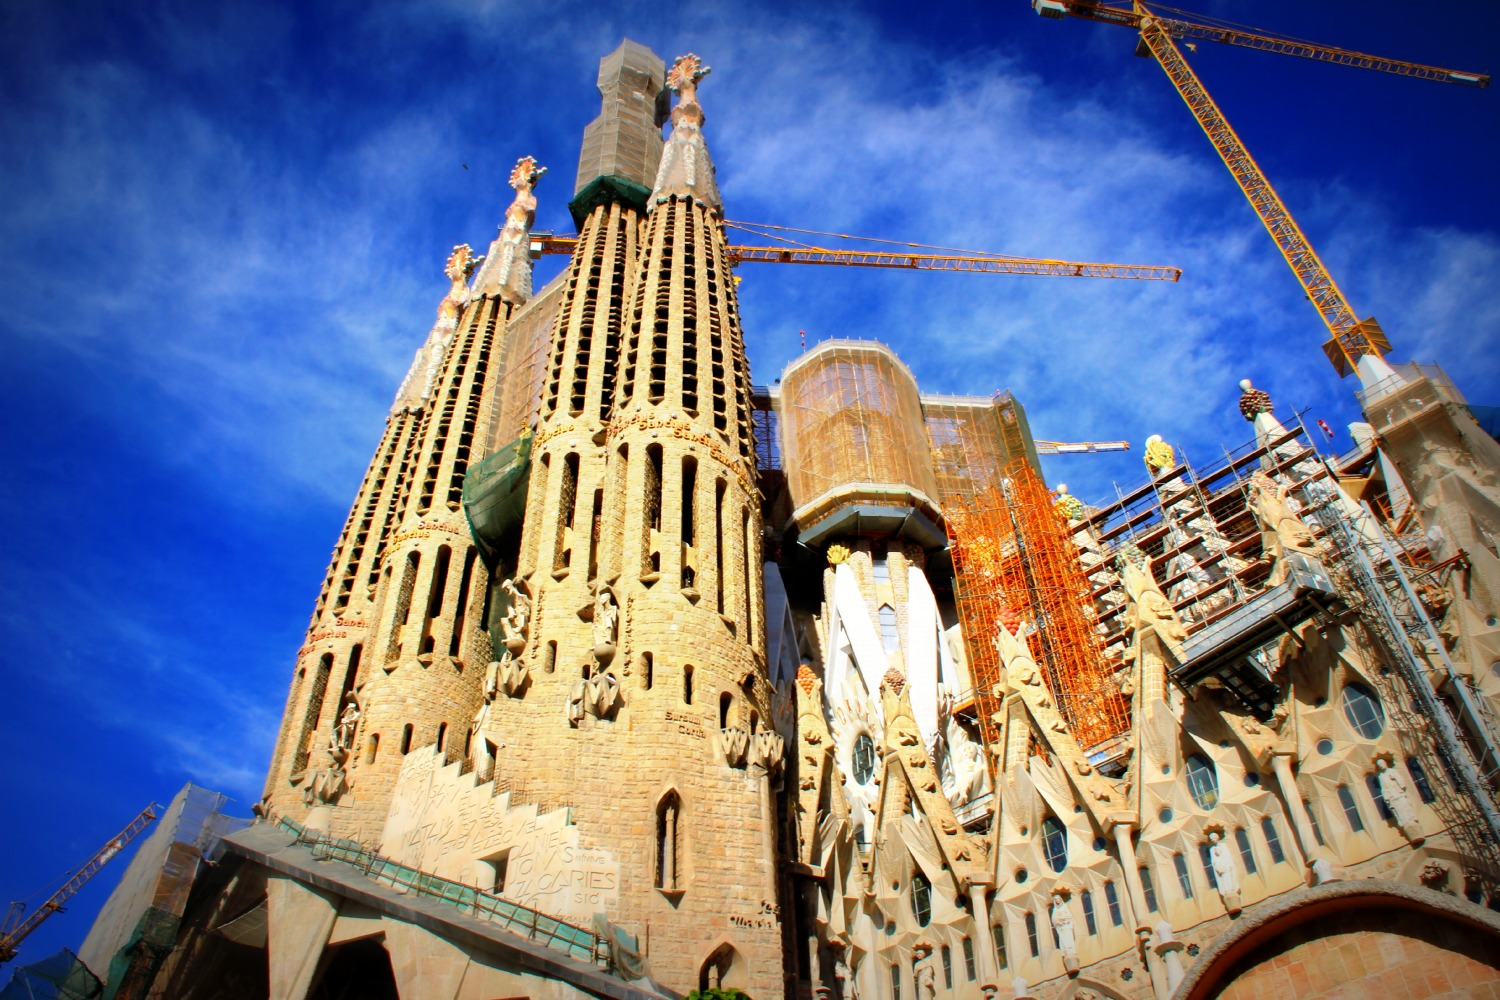 gaudi essay Gaudi's la sagrada familia please follow the introduction and the outline to write the paper note, you will need 4 sources, and the student has provided two so, please find additional 2.